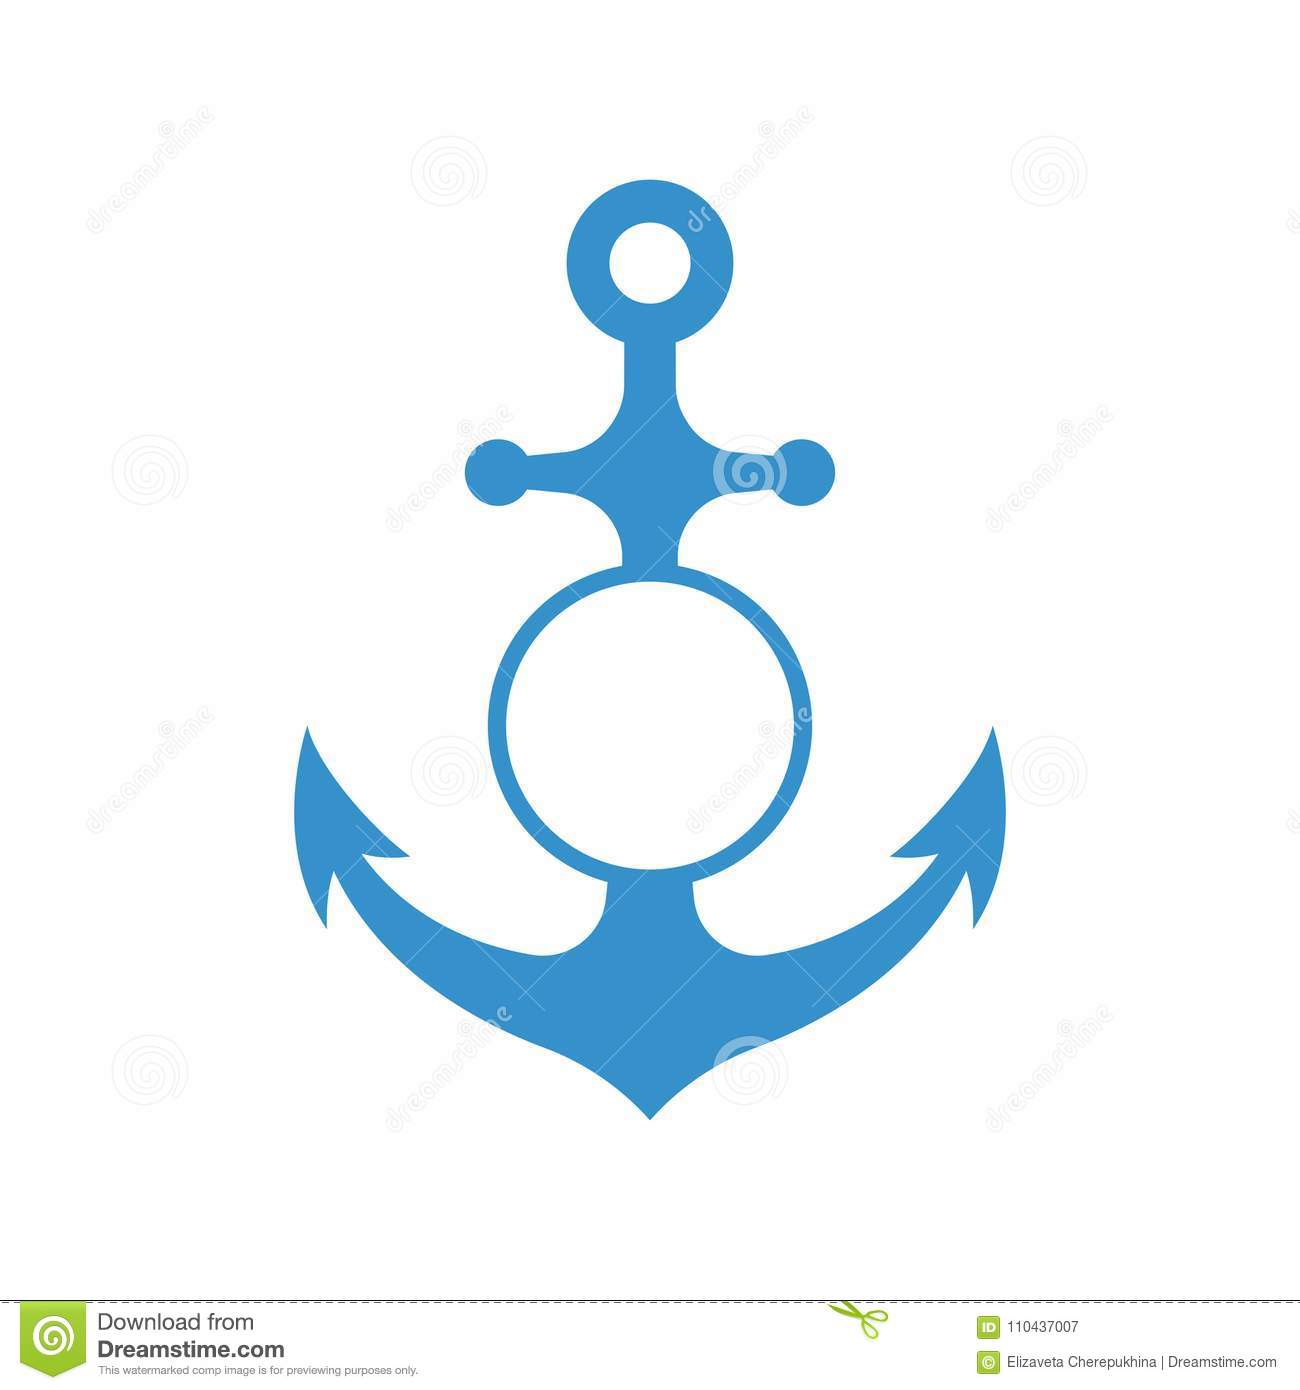 Download Nautical Anchor With Circle Monogram Isolated On White Background Blue Sulhouette Vector Stock